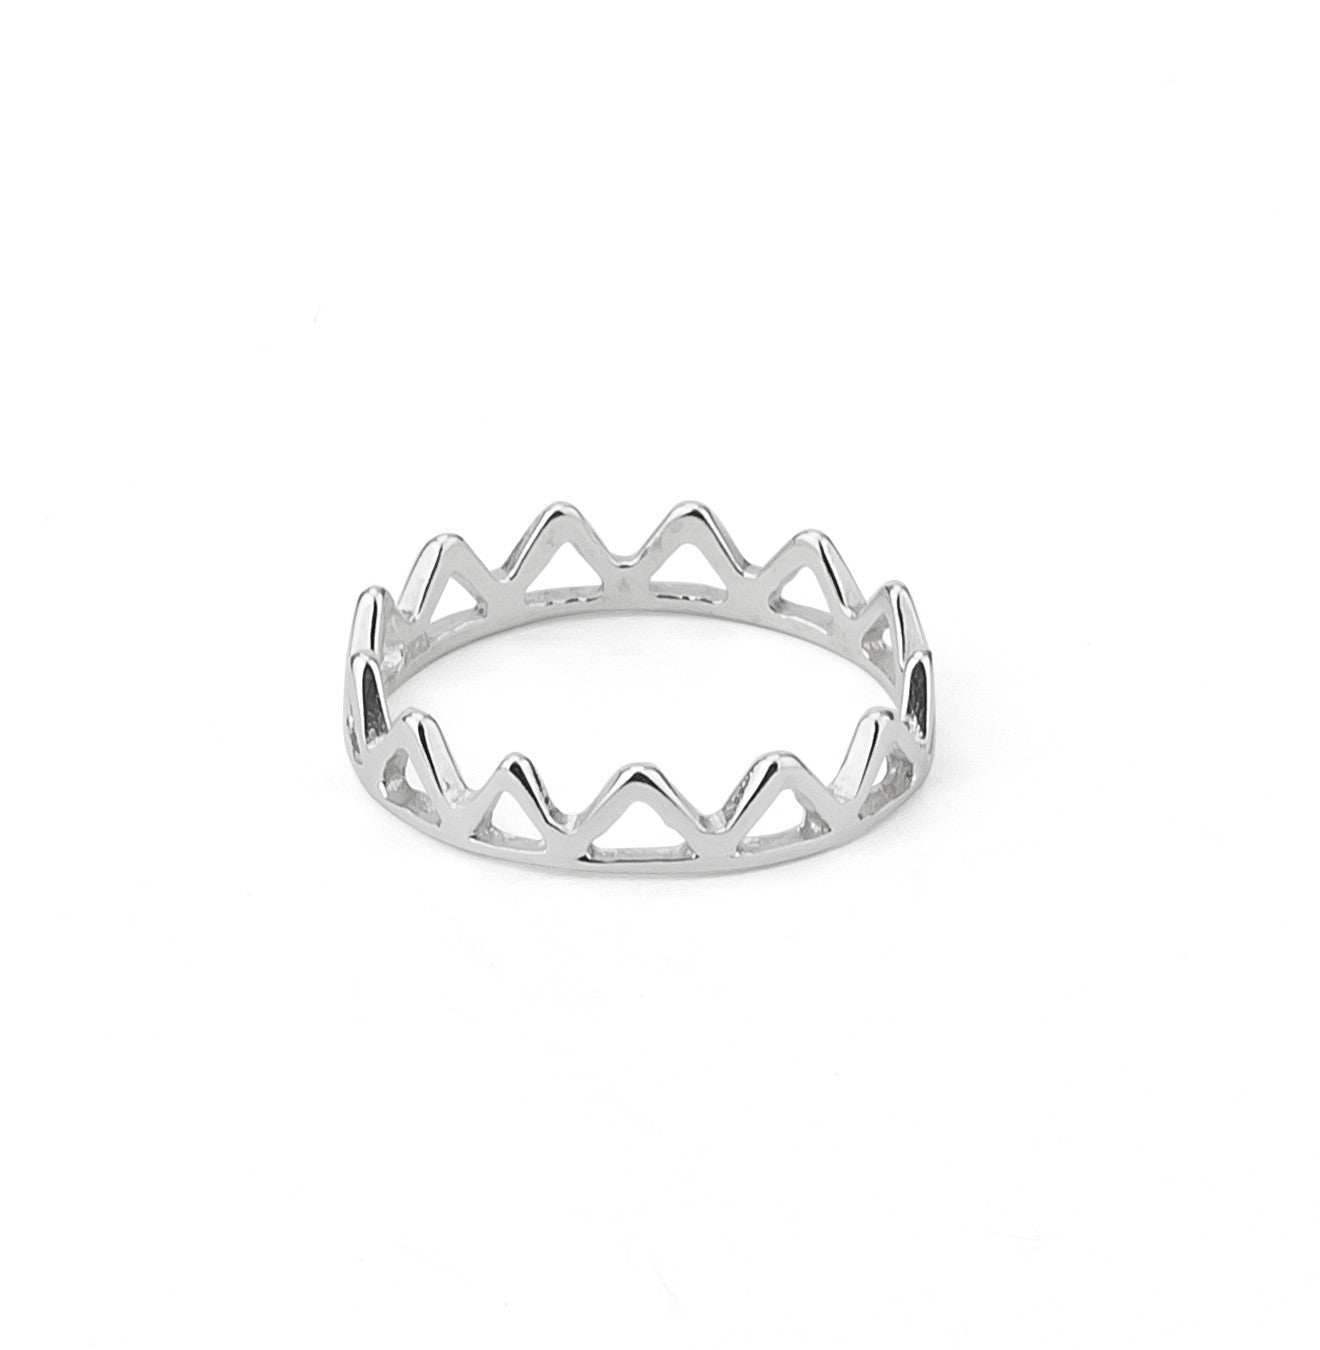 Crown Shaped Sterling Silver 925 Ring